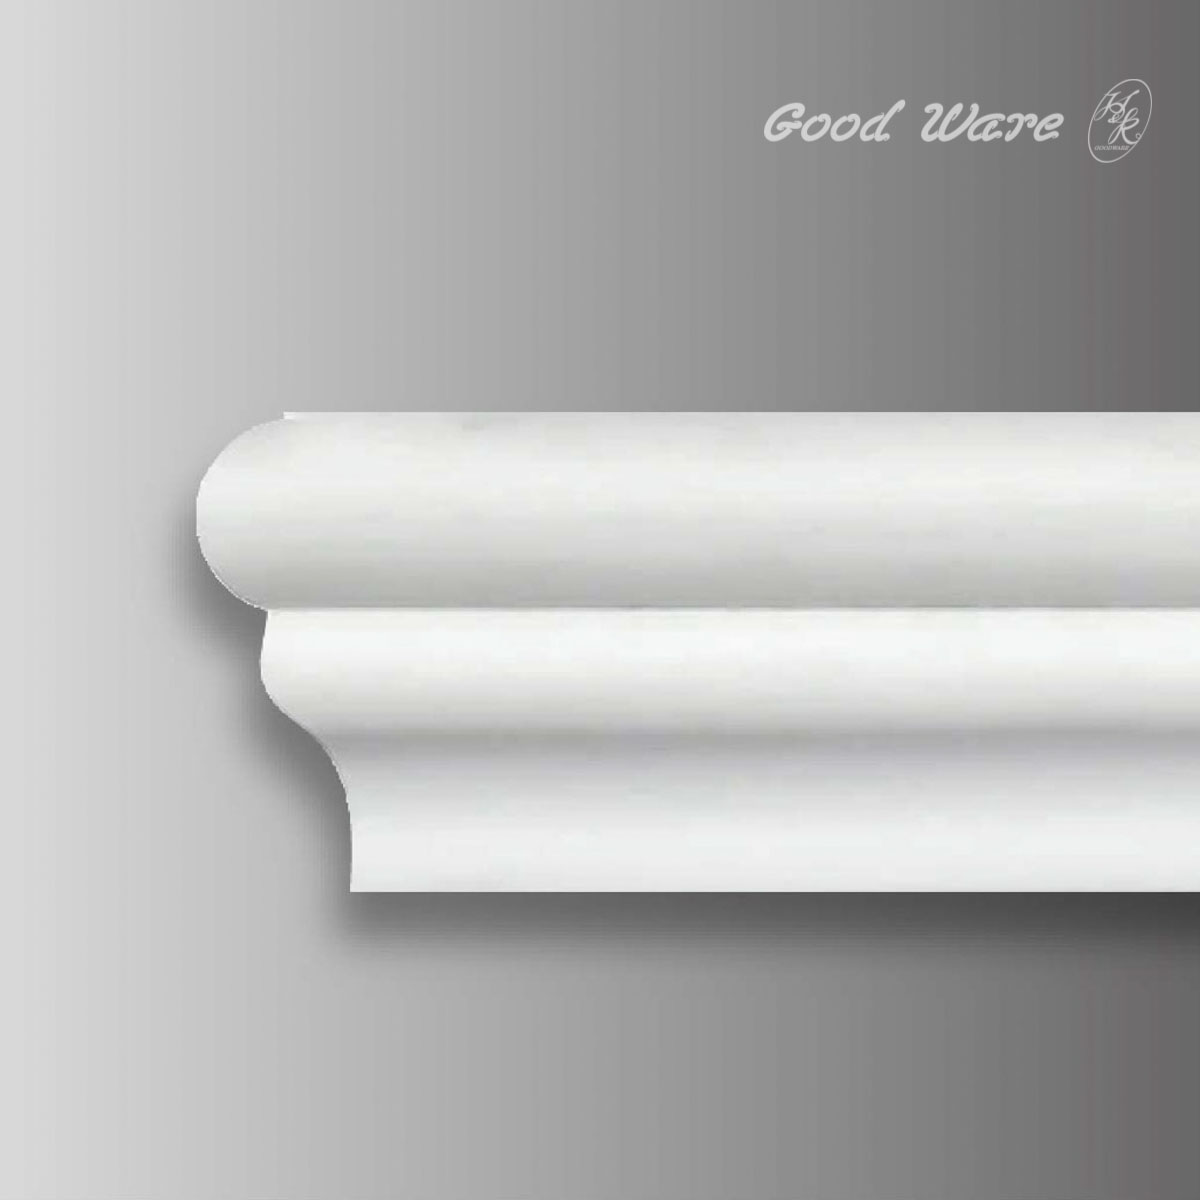 Wholesale decorative flexible trim moulding